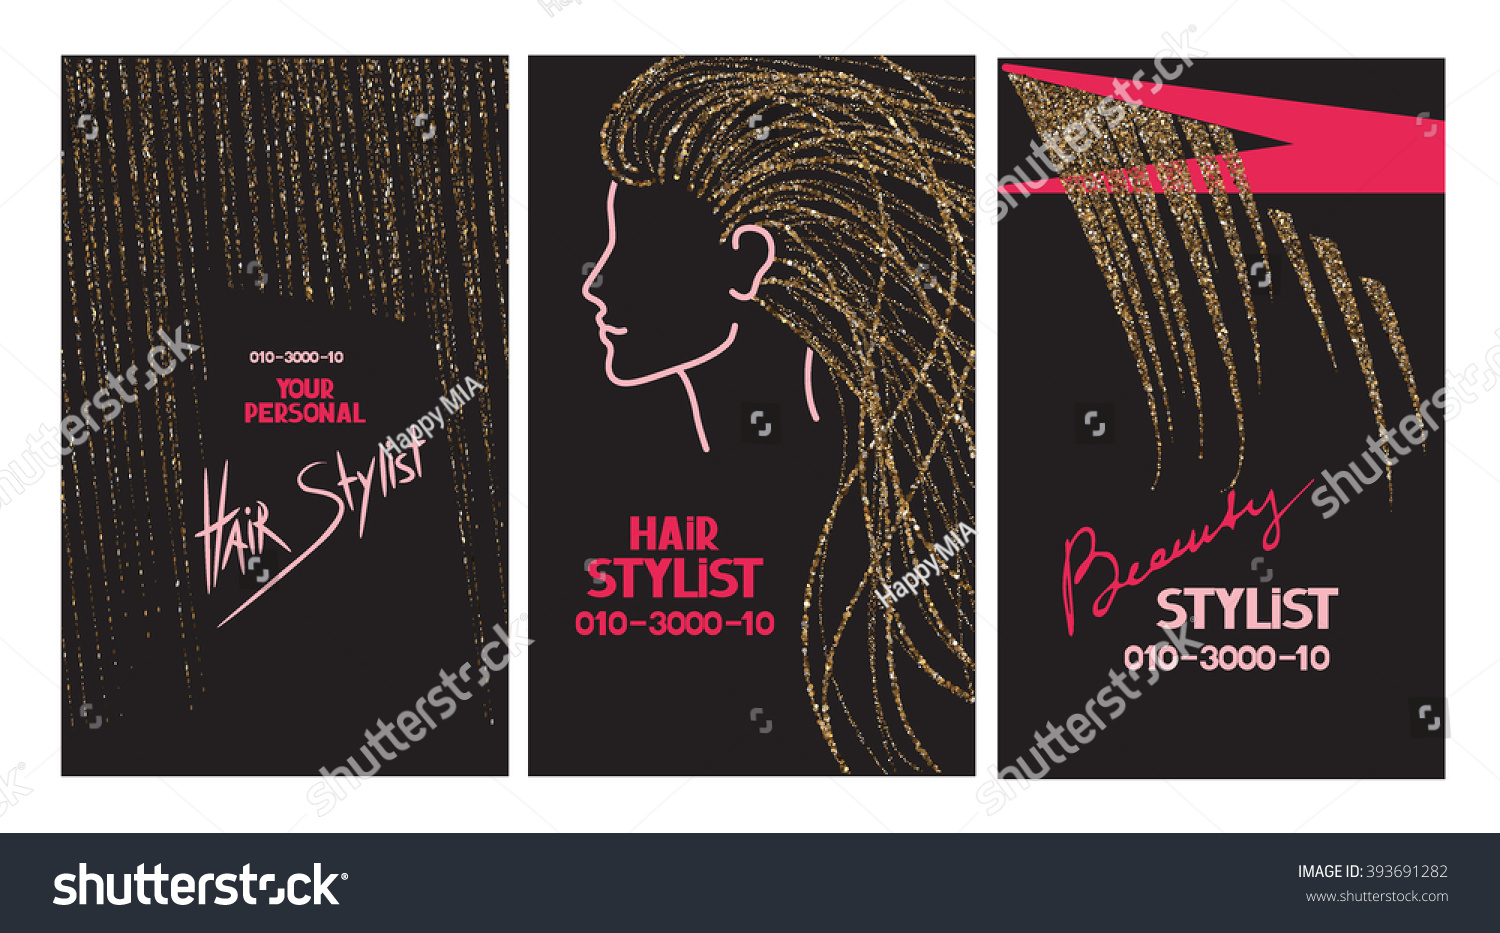 Hair Stylist Business Cards Abstract Gold Stock Vector 393691282 ...